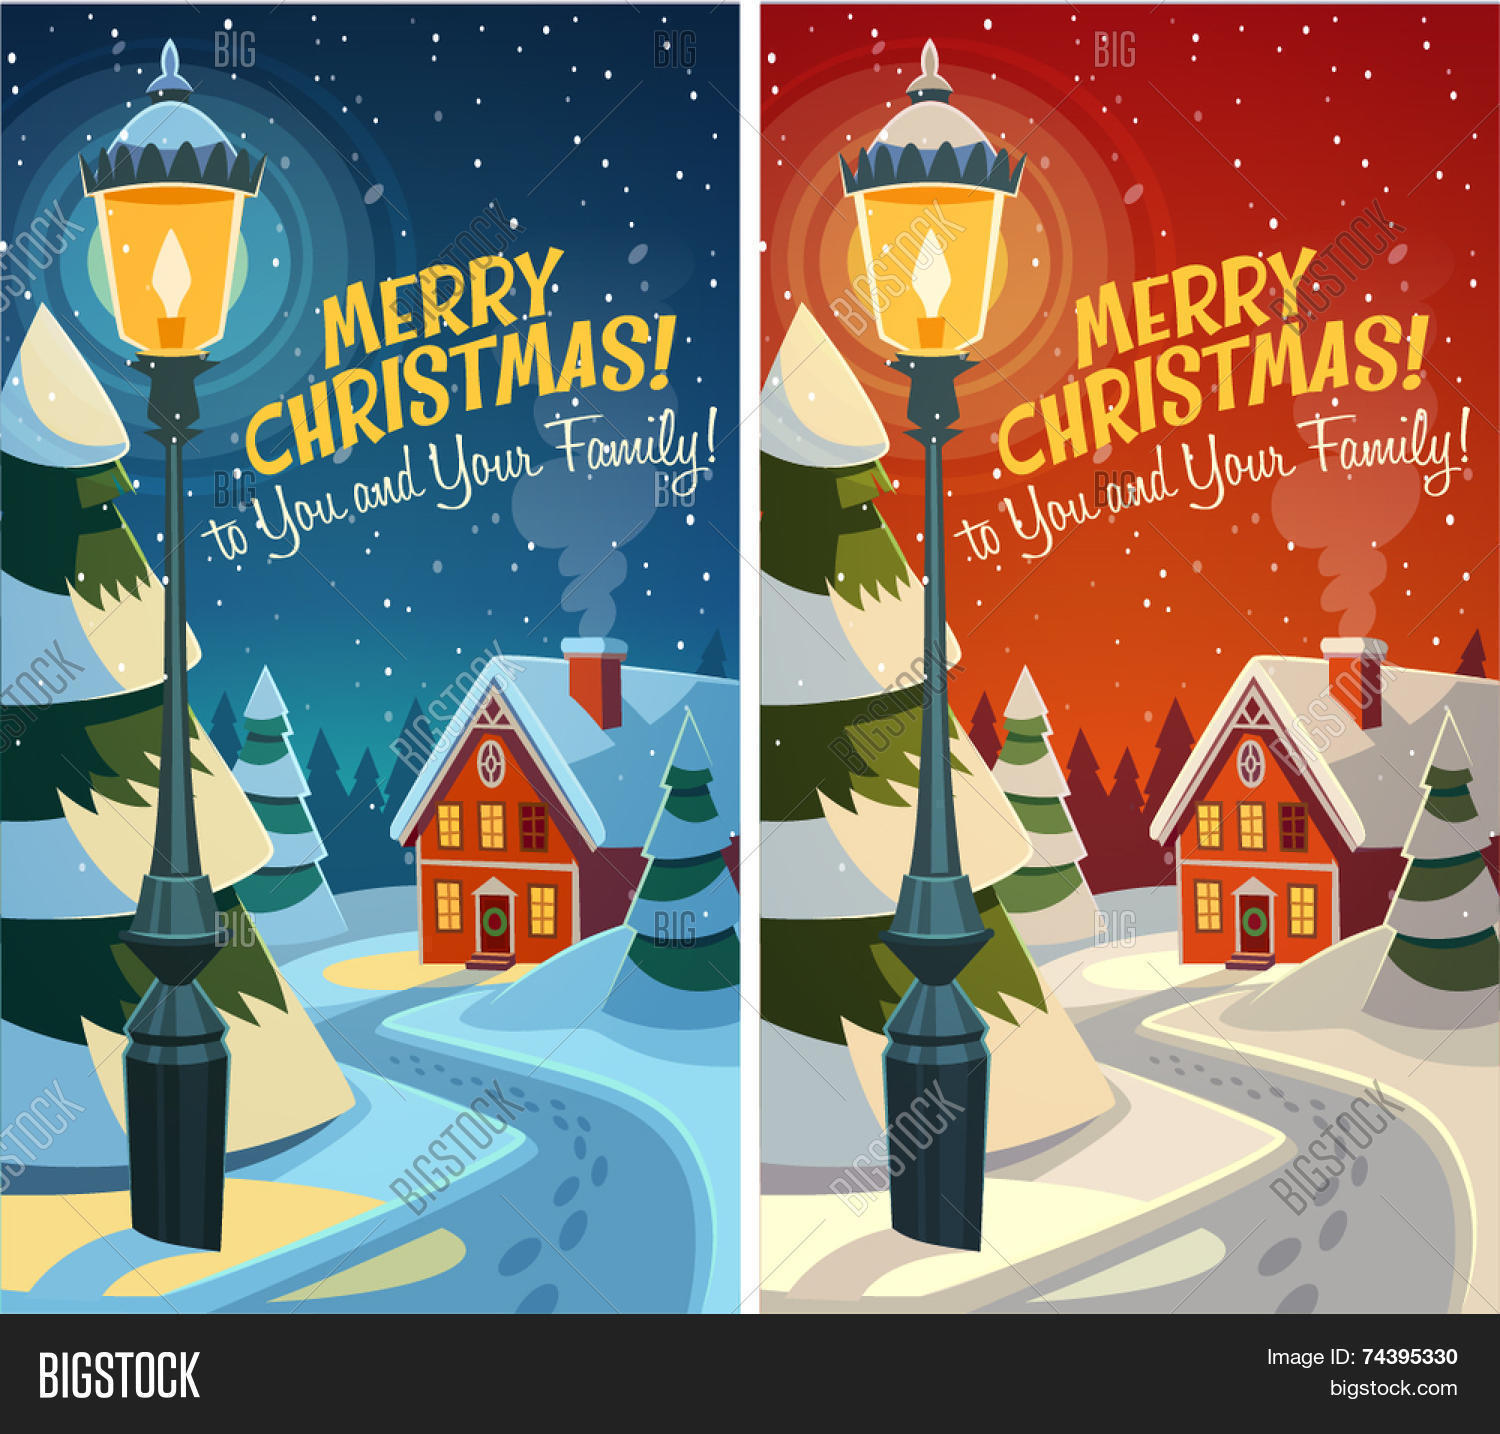 Old Fashioned Street Vector & Photo (Free Trial) | Bigstock